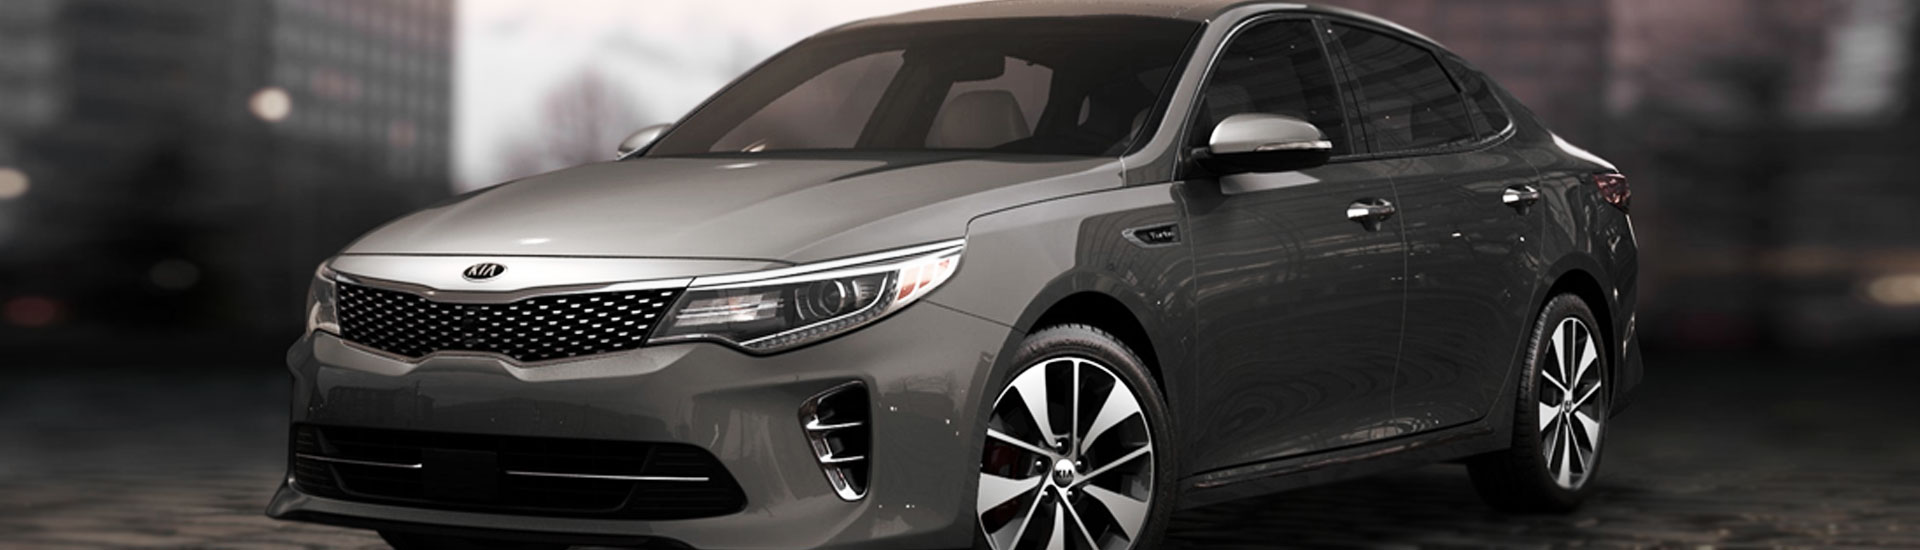 Kia Optima Window Tint